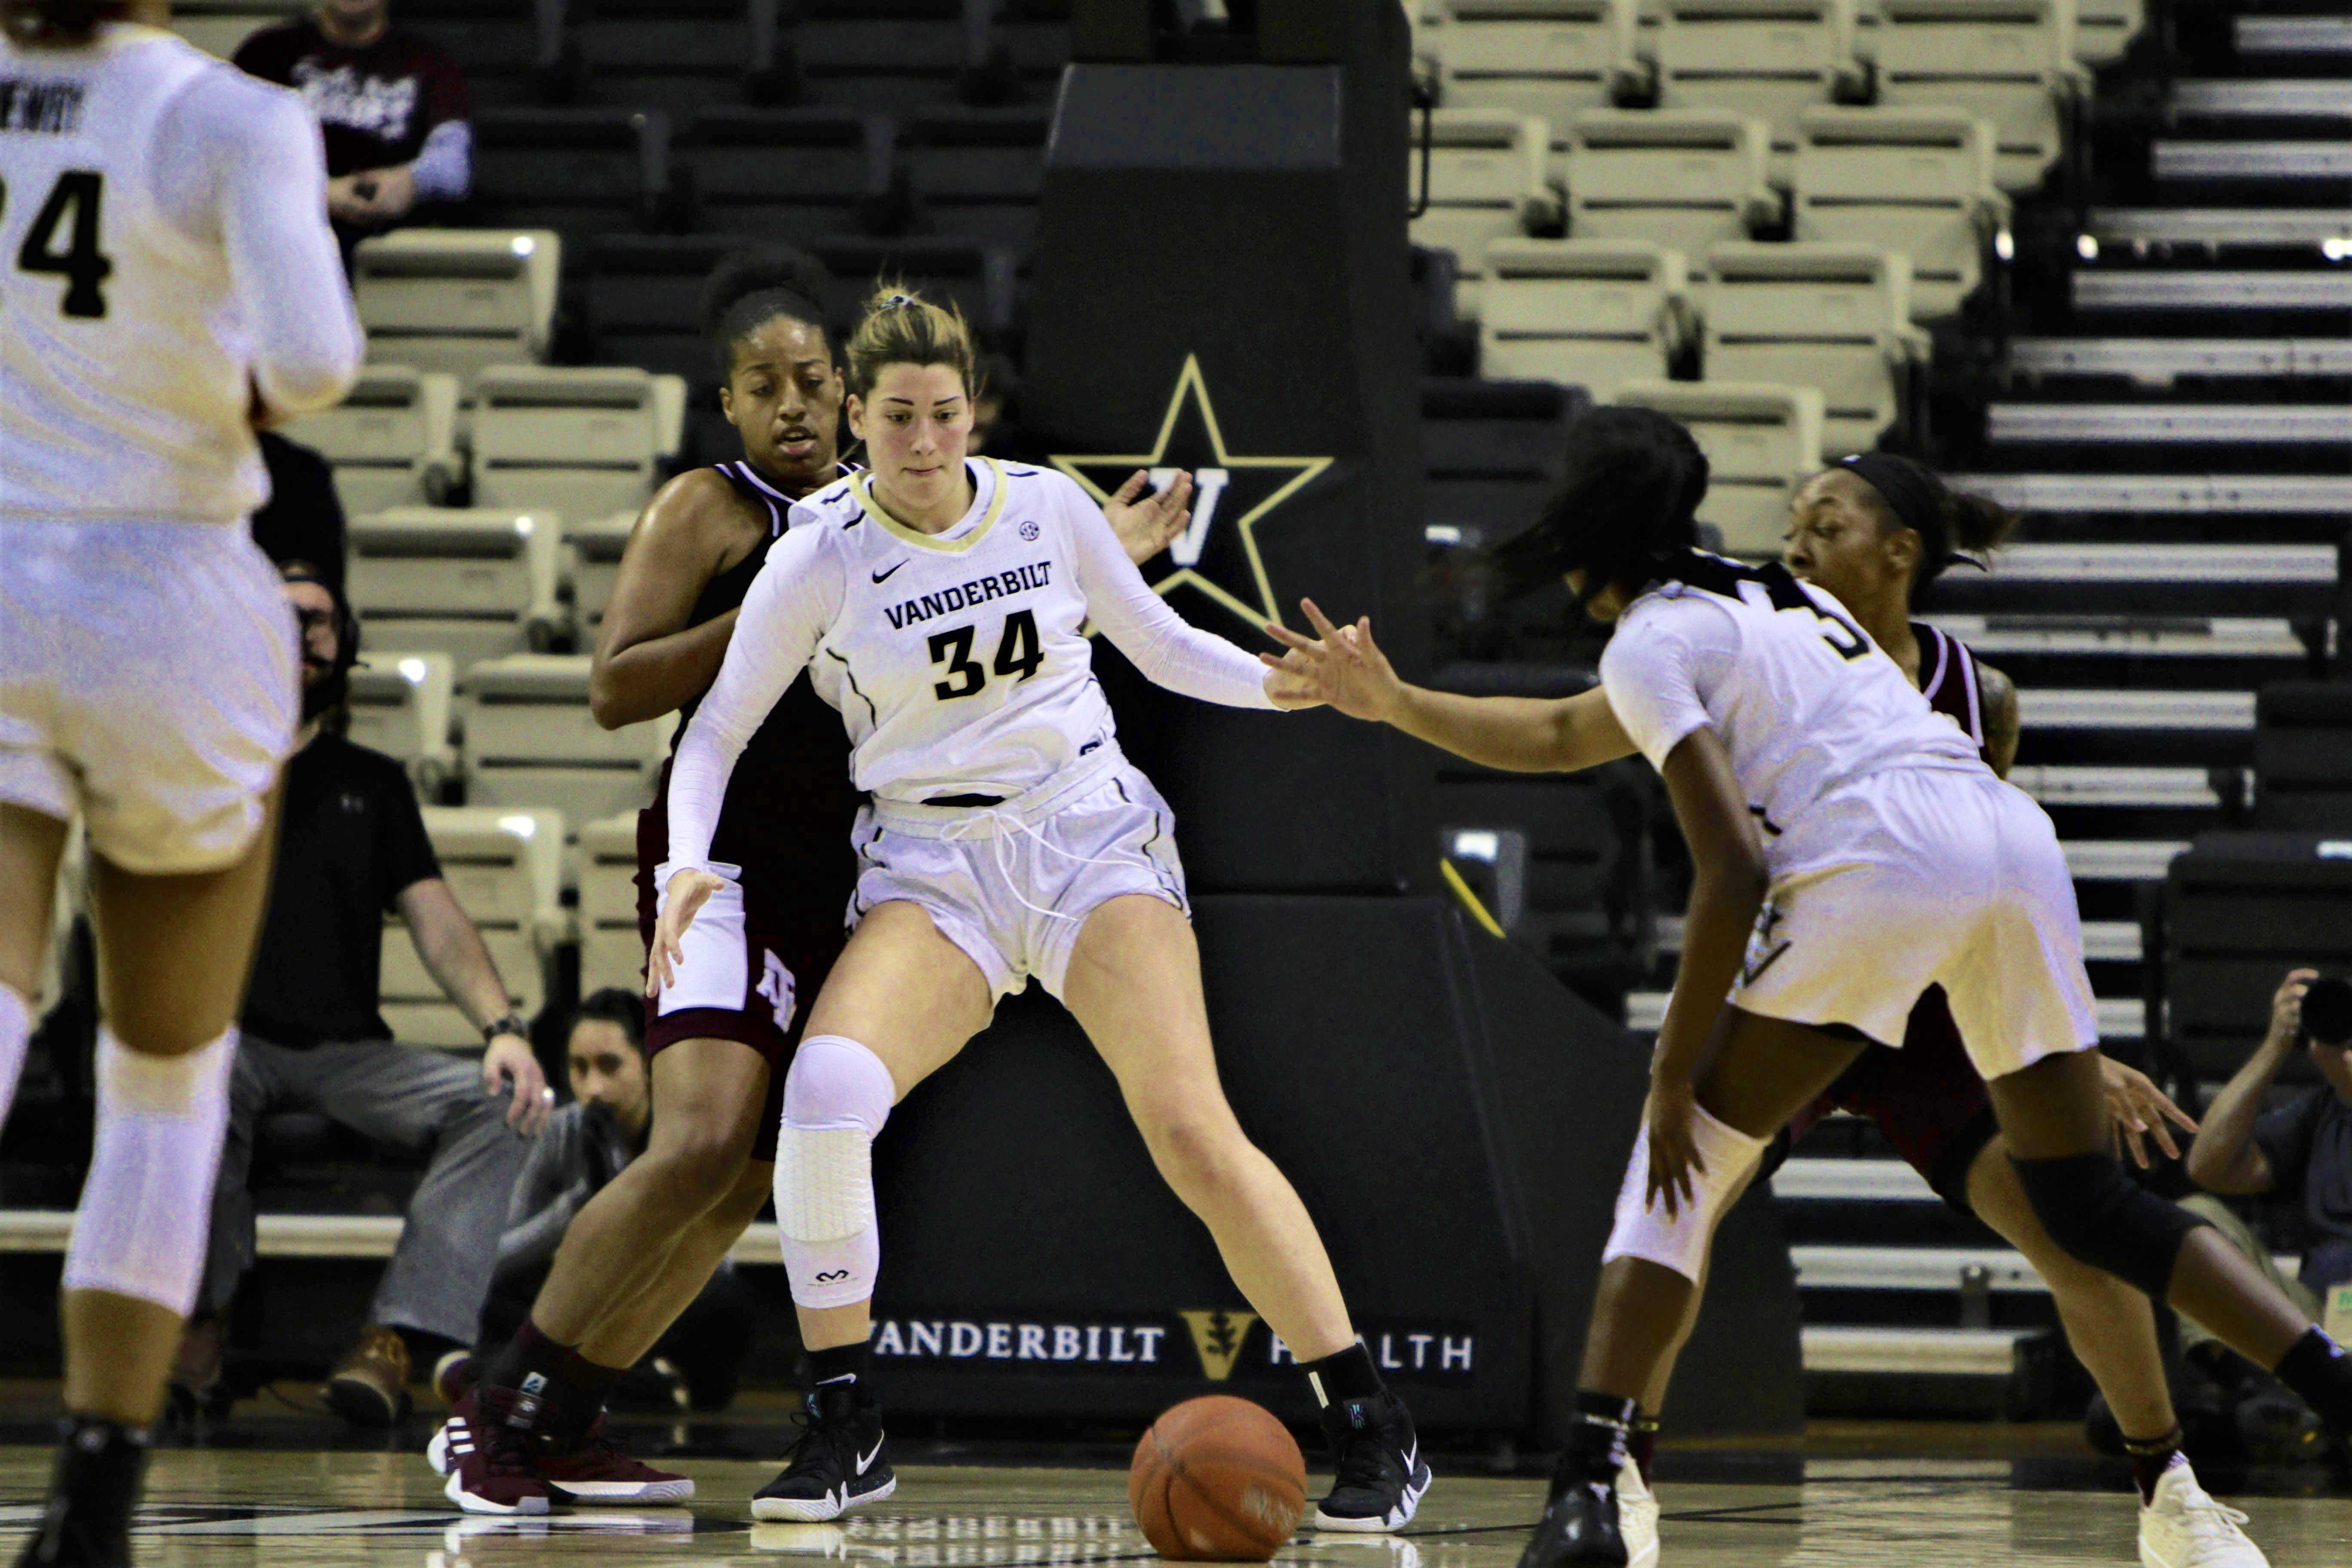 Vanderbilt faces Texas A&M on January 10, 2019. Photo by Shun Ahmed